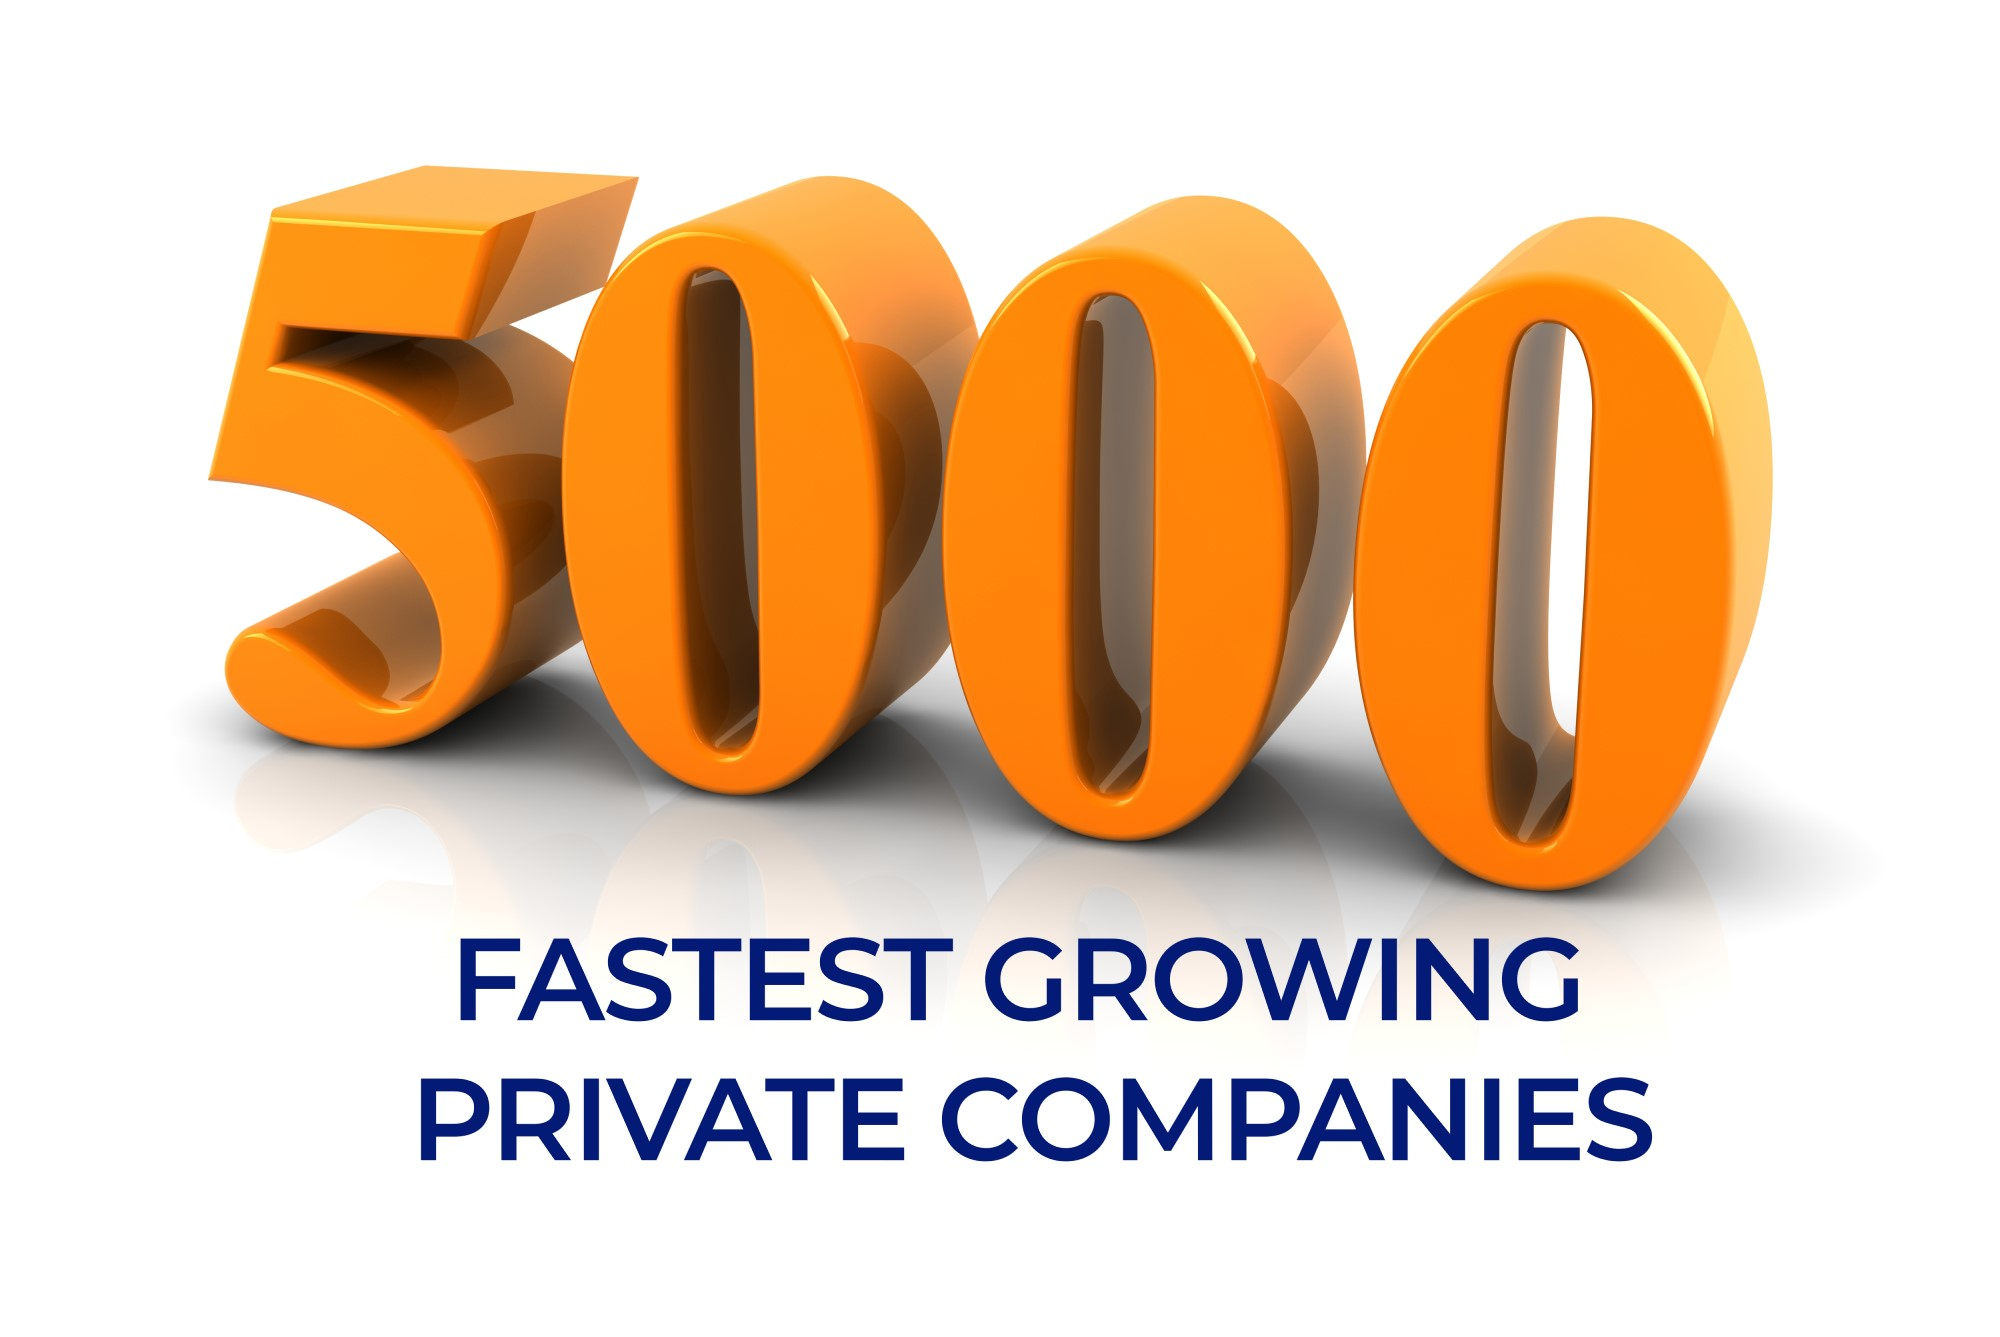 Inc. Magazine has listed Pinnacle Consulting LLC as Top 5000 Fastest Growing Private Companies